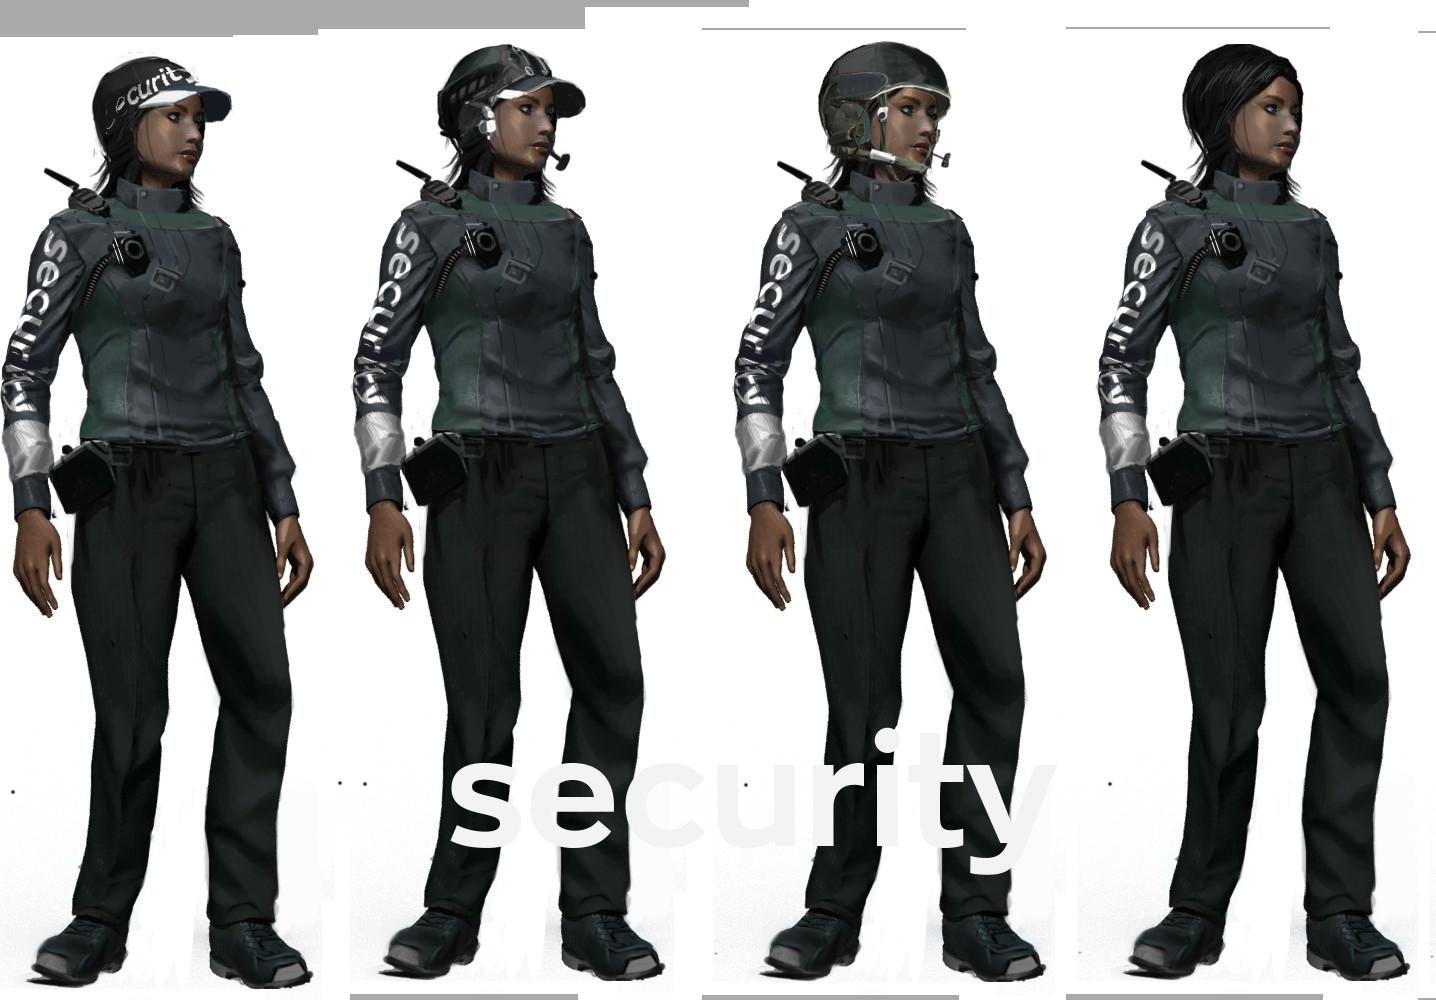 Security Guard headgear variants